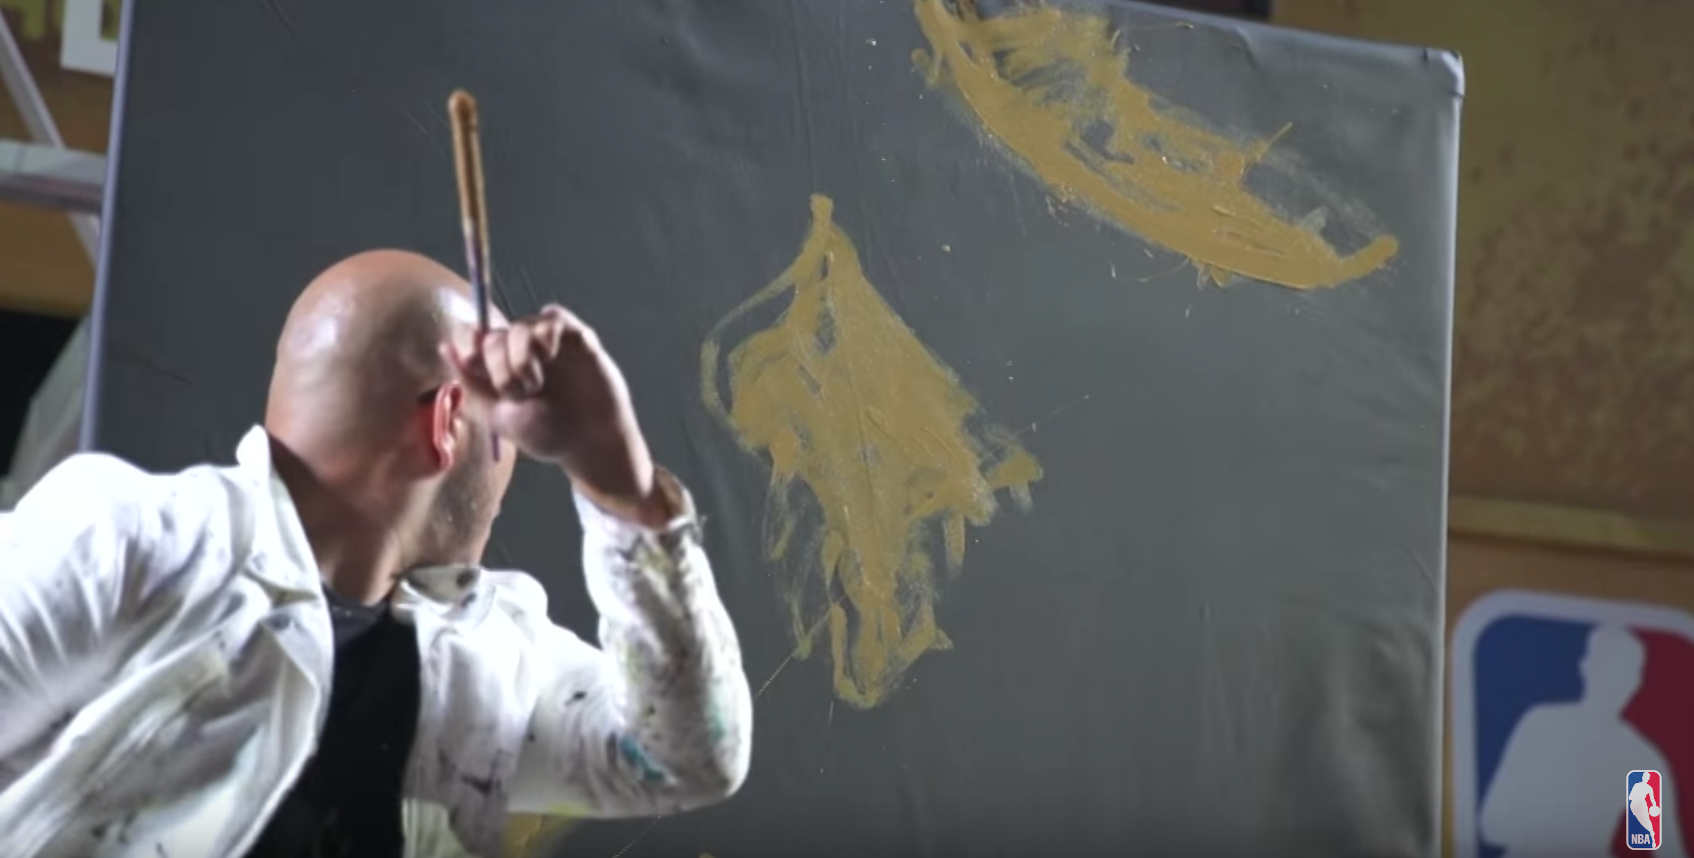 LeBron James gets painted upside down at NBA House Rio by artist David Garibaldi